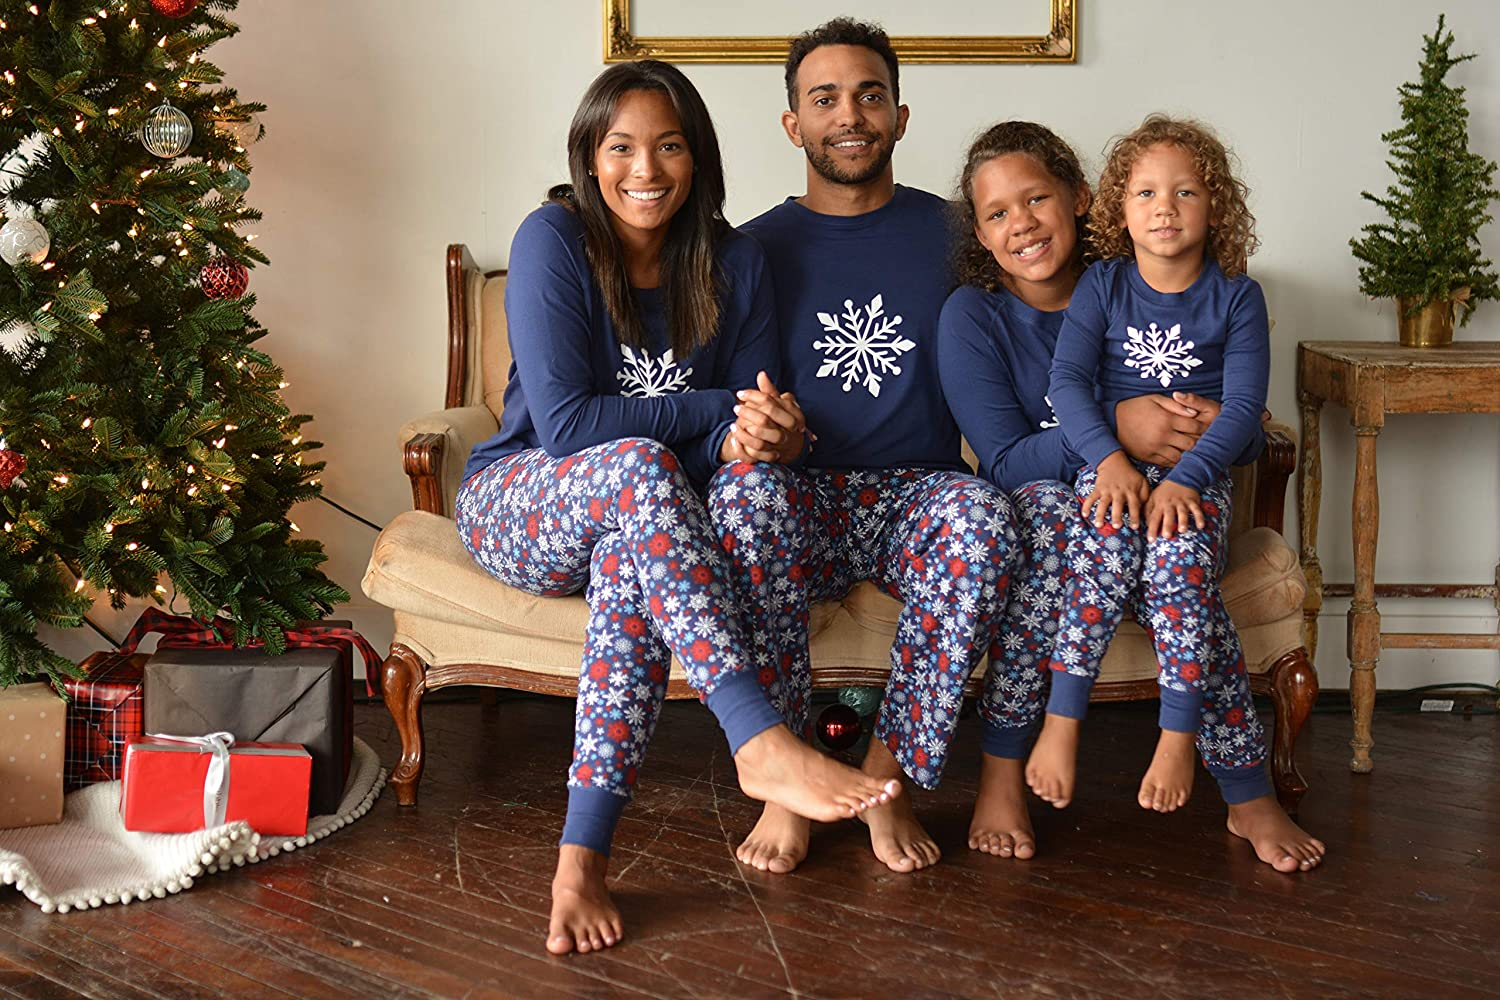 e39084a053 Amazon.com  Sleepyheads Holiday Family Matching Winter Navy Snowflake Pajama  PJ Sets  Clothing